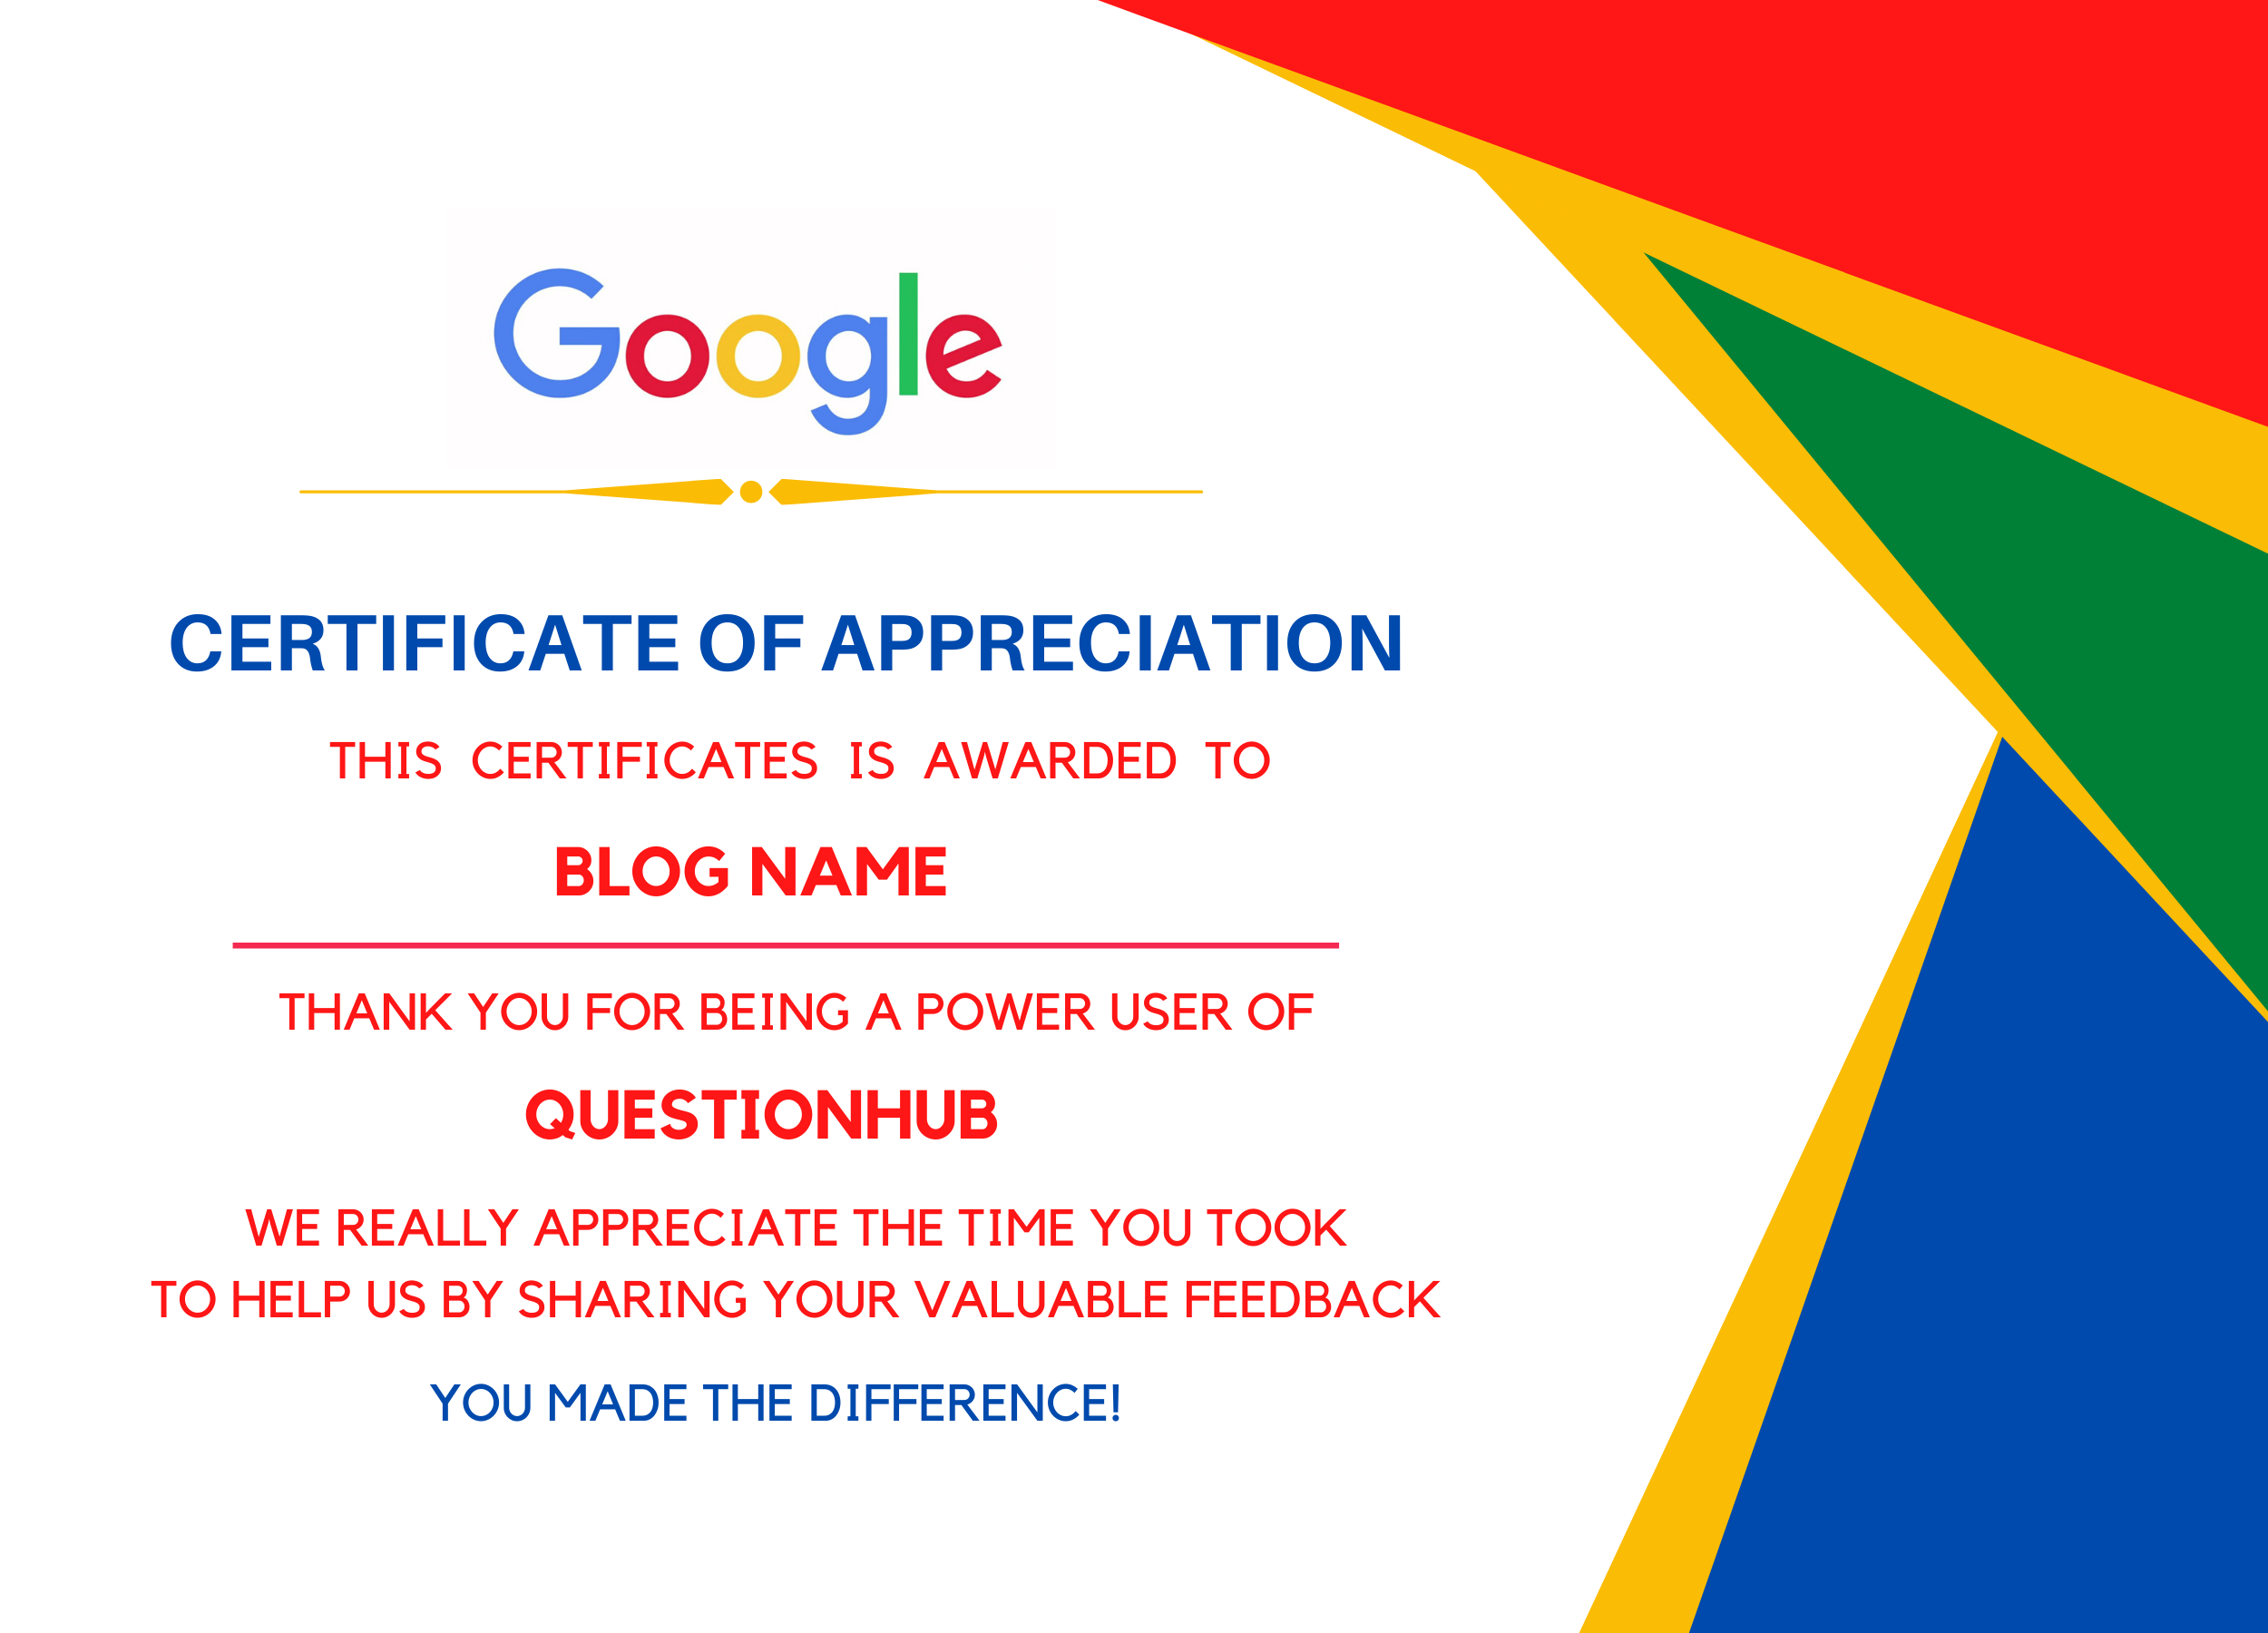 google question hub certificate